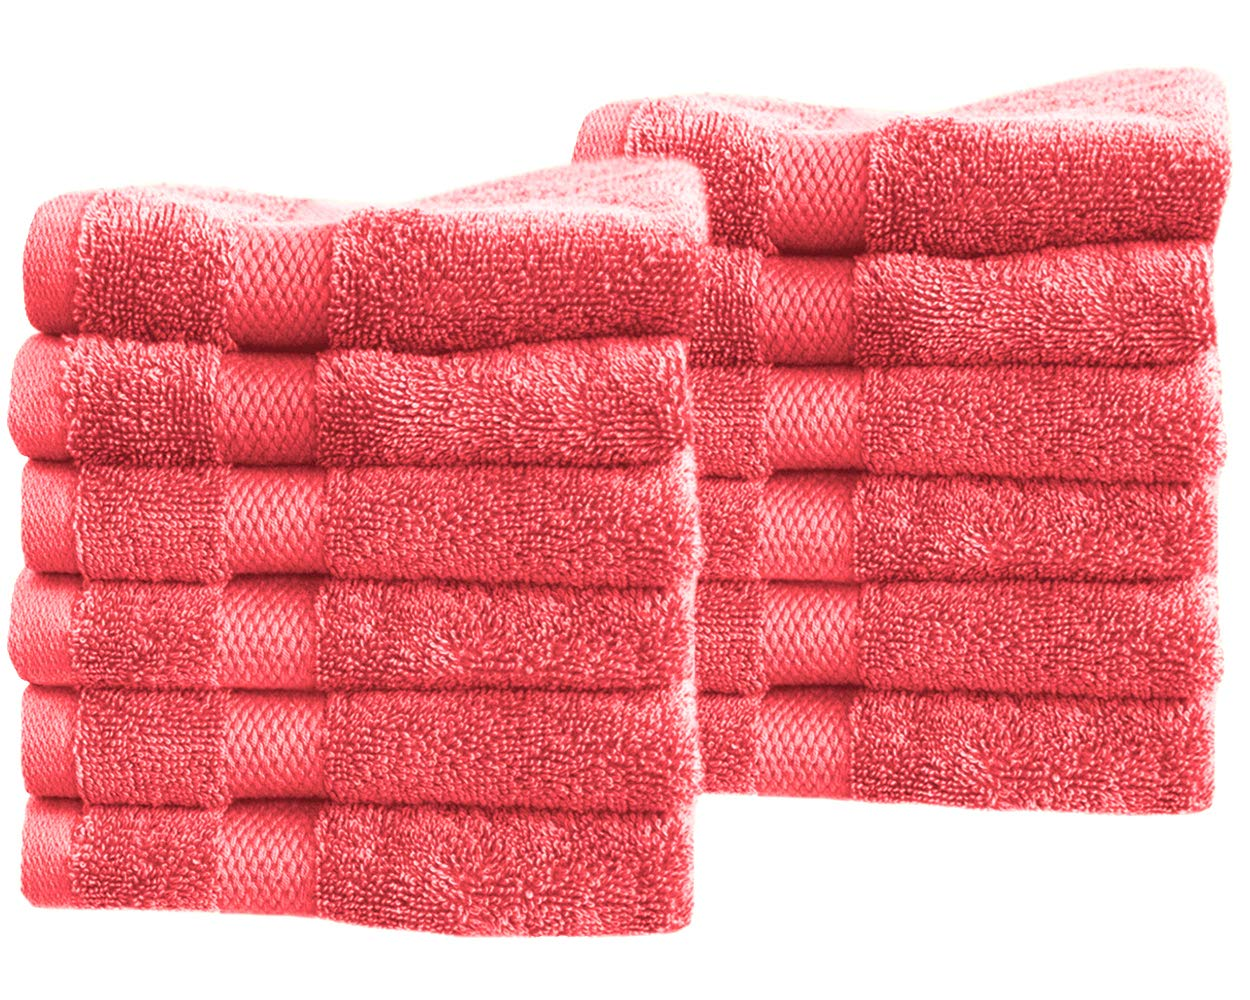 """Cotton & Calm Exquisitely Fluffy Washcloths/Face Cloths Towel Set (12 Pack, 13"""" x 13""""), Premium Coral Washcloths - Super Soft, Thick, and Absorbent for Face, Hand, Spa & Gym"""